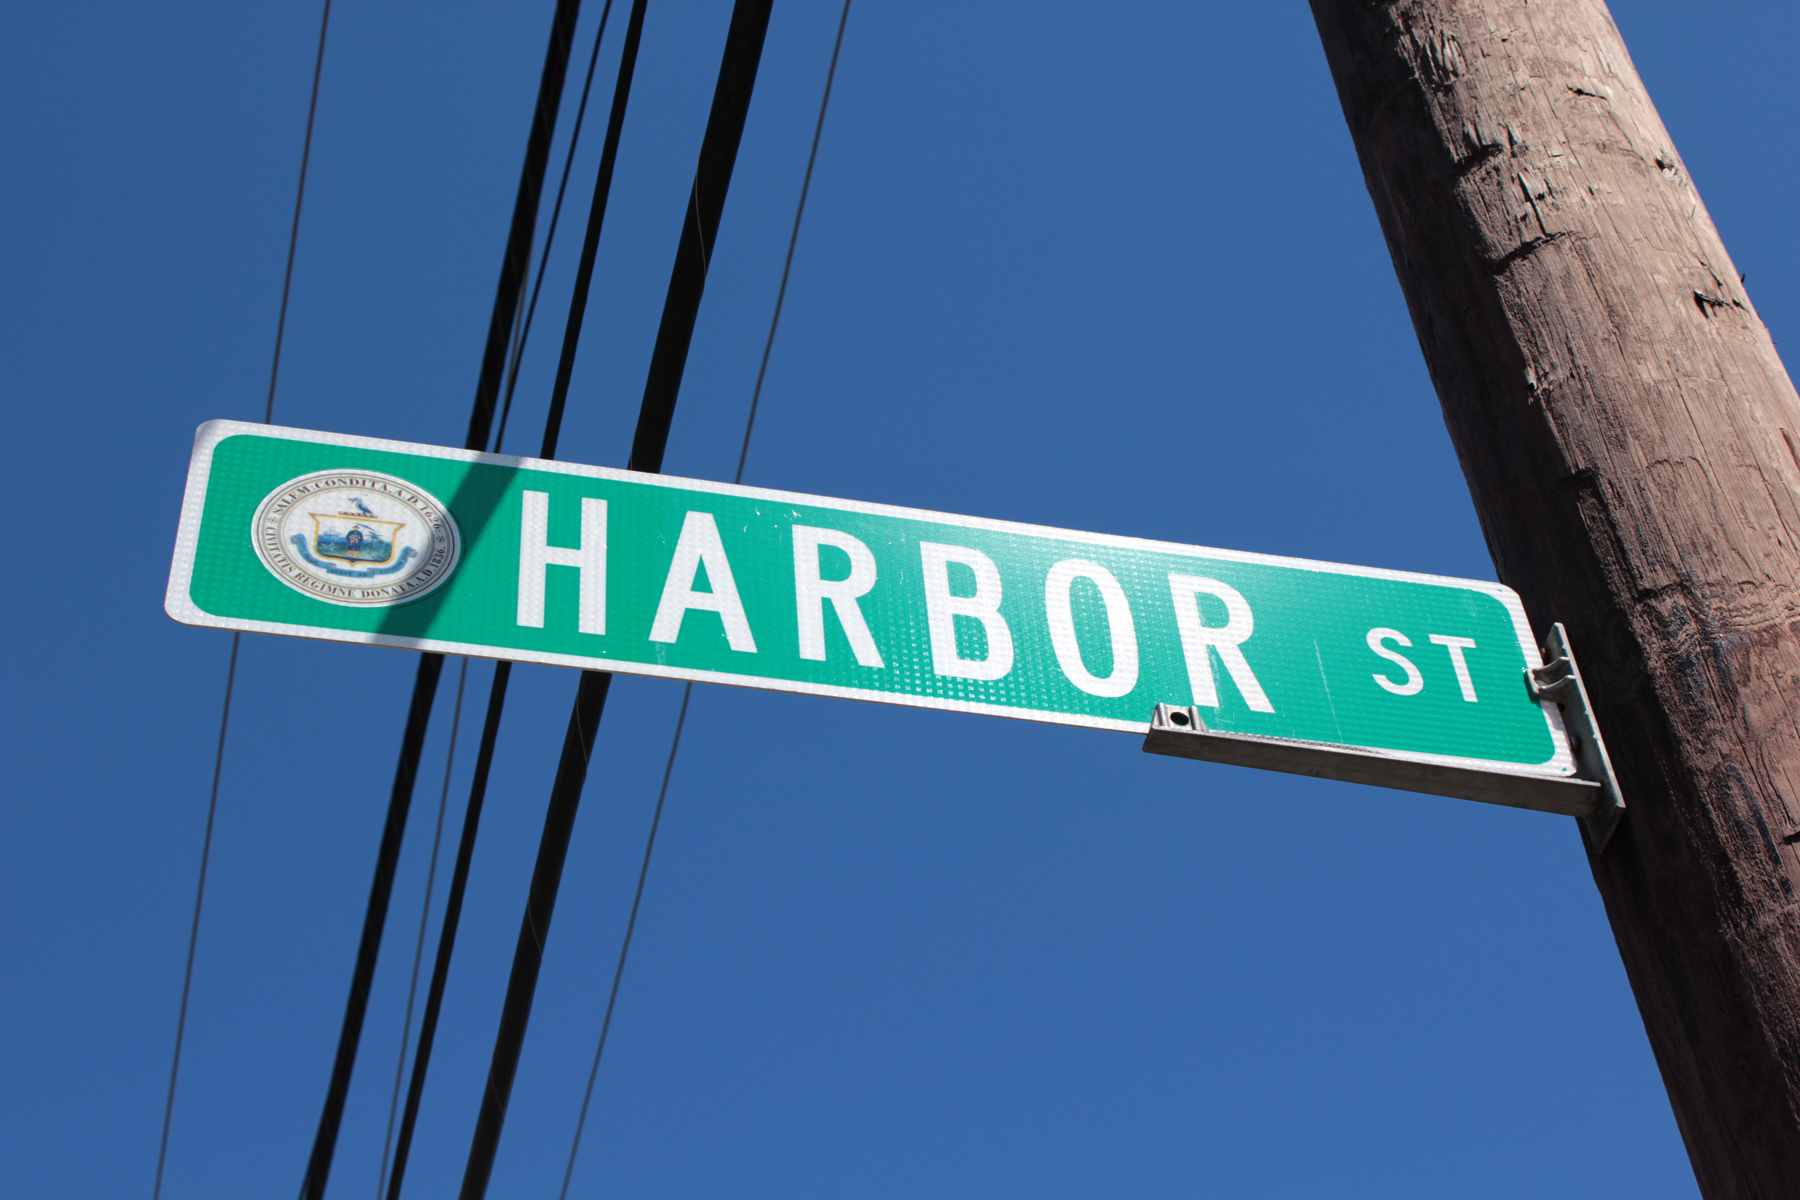 Pin Blank Street Sign Graphics Code Comments On Pinterest